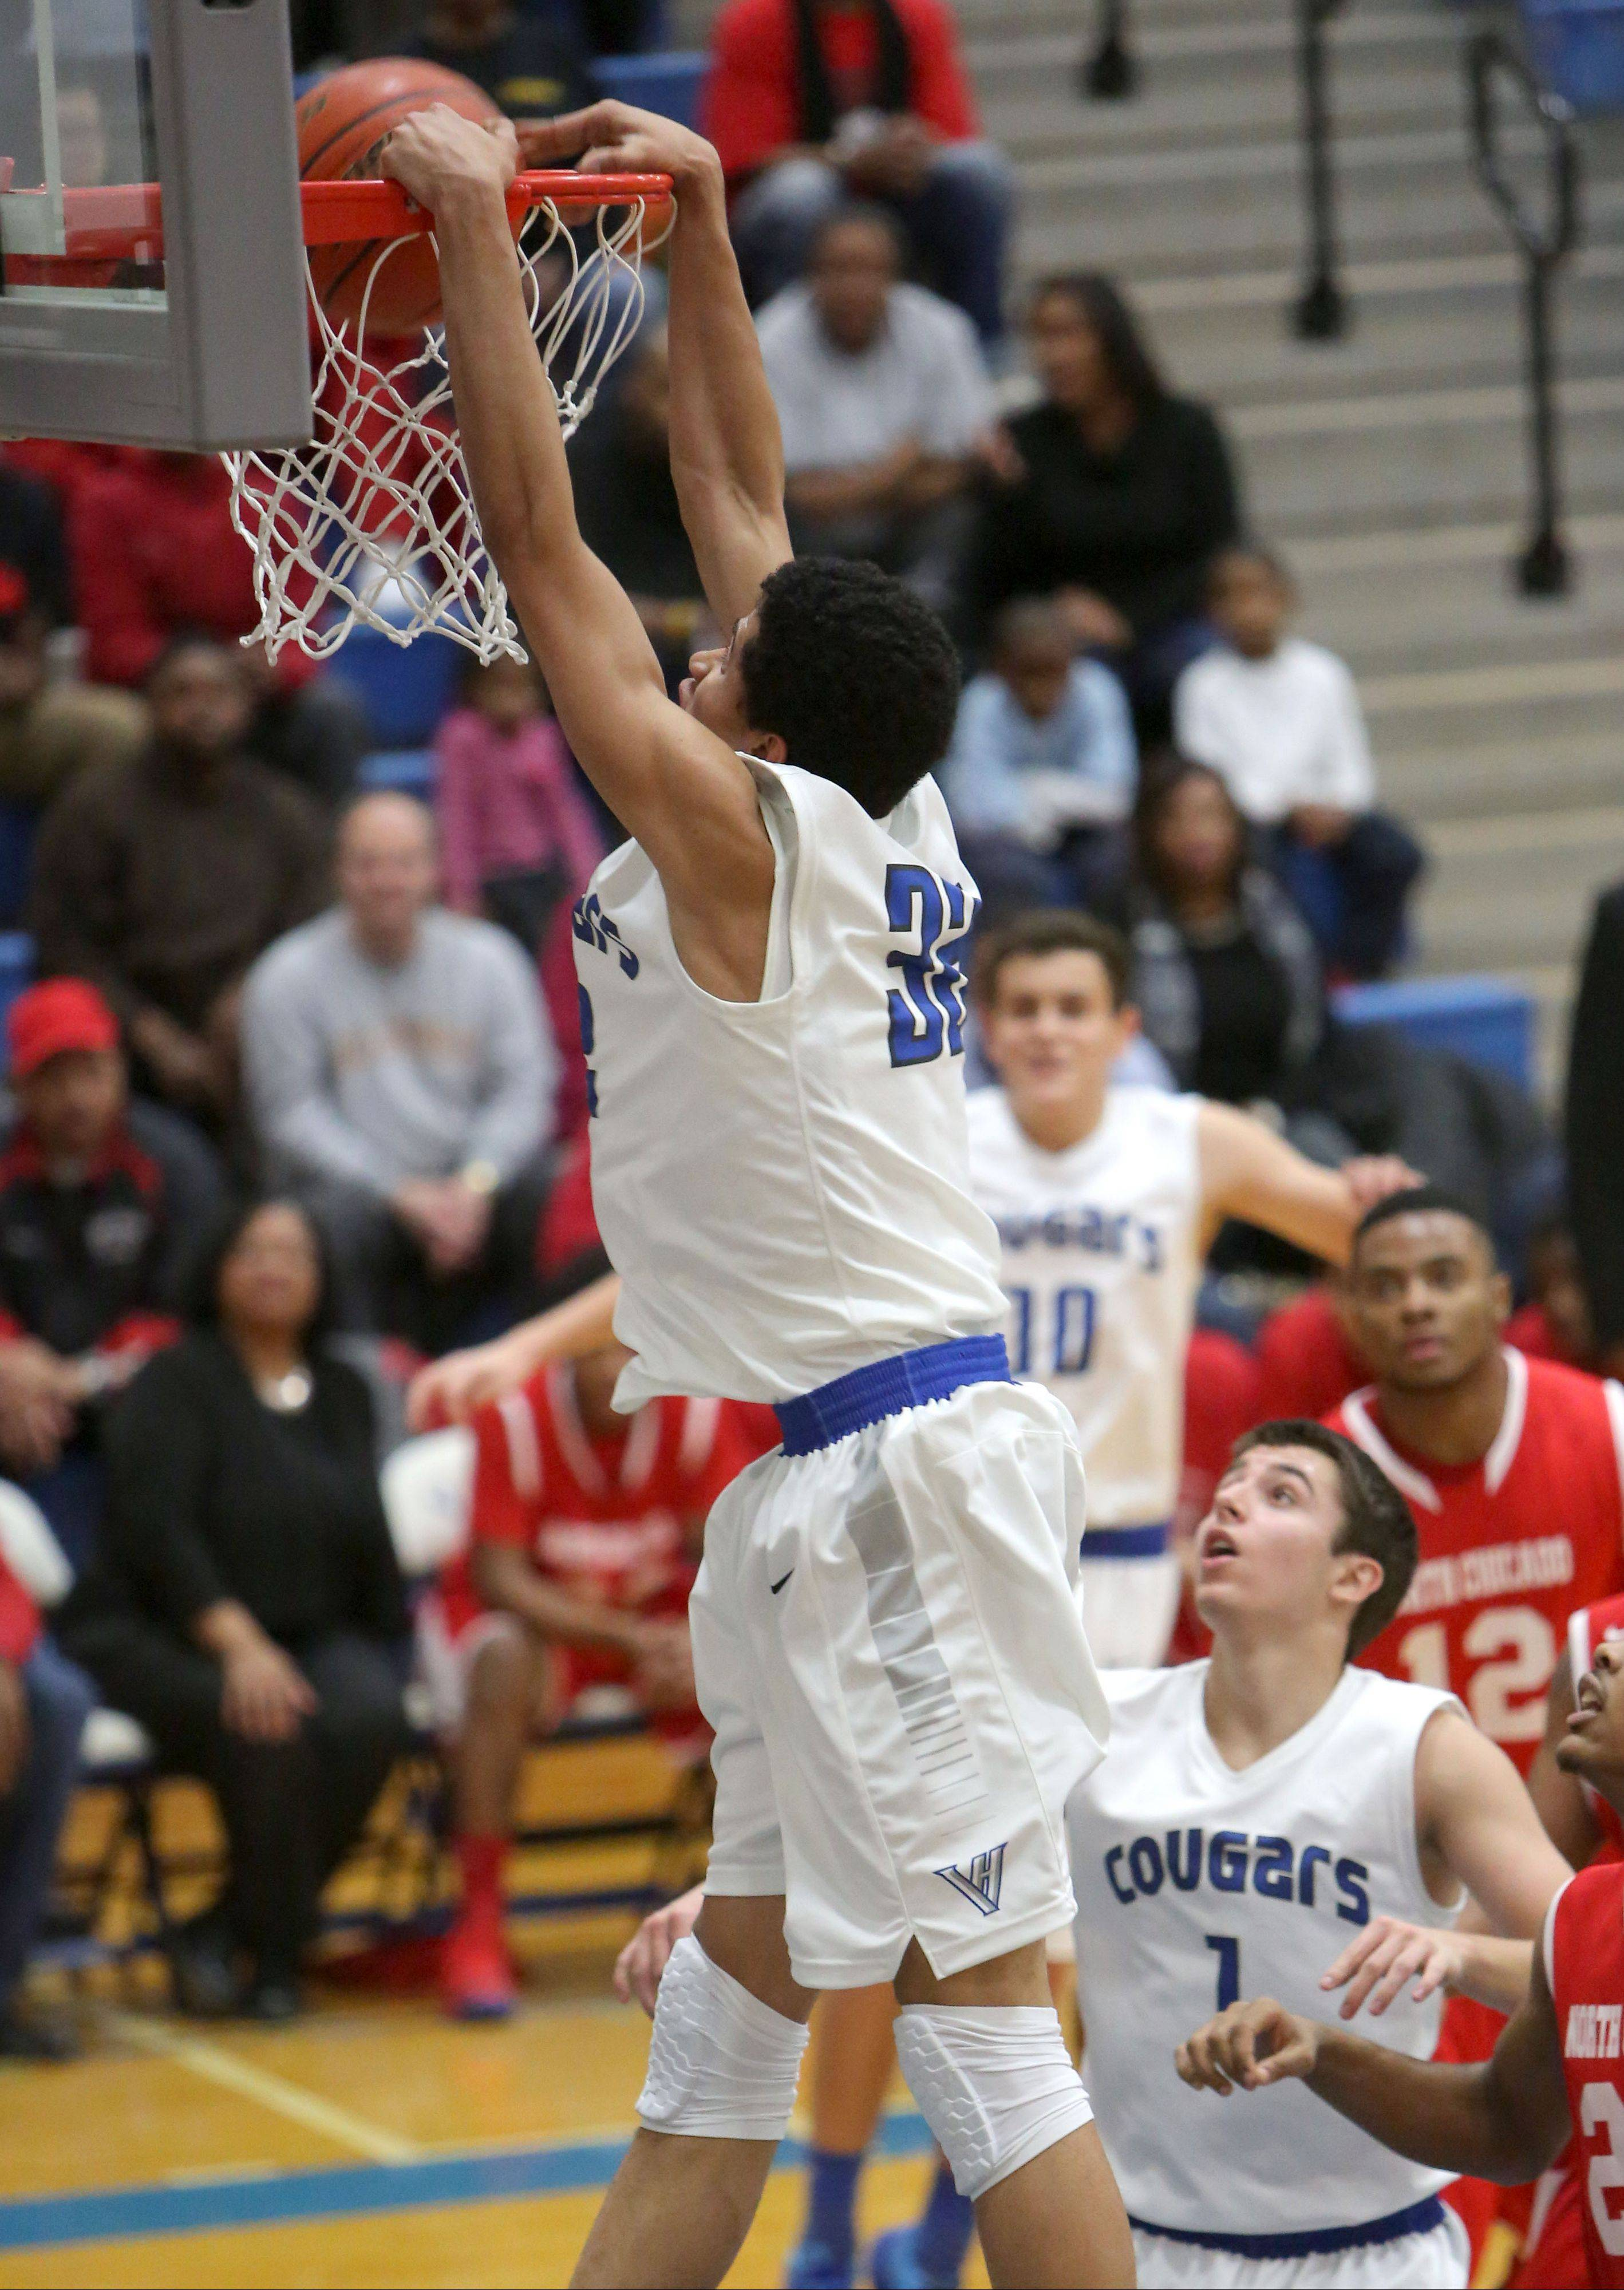 Vernon Hills' Lem Turner goes in for a dunk against North Chicago on Tuesday night in Vernon Hills.